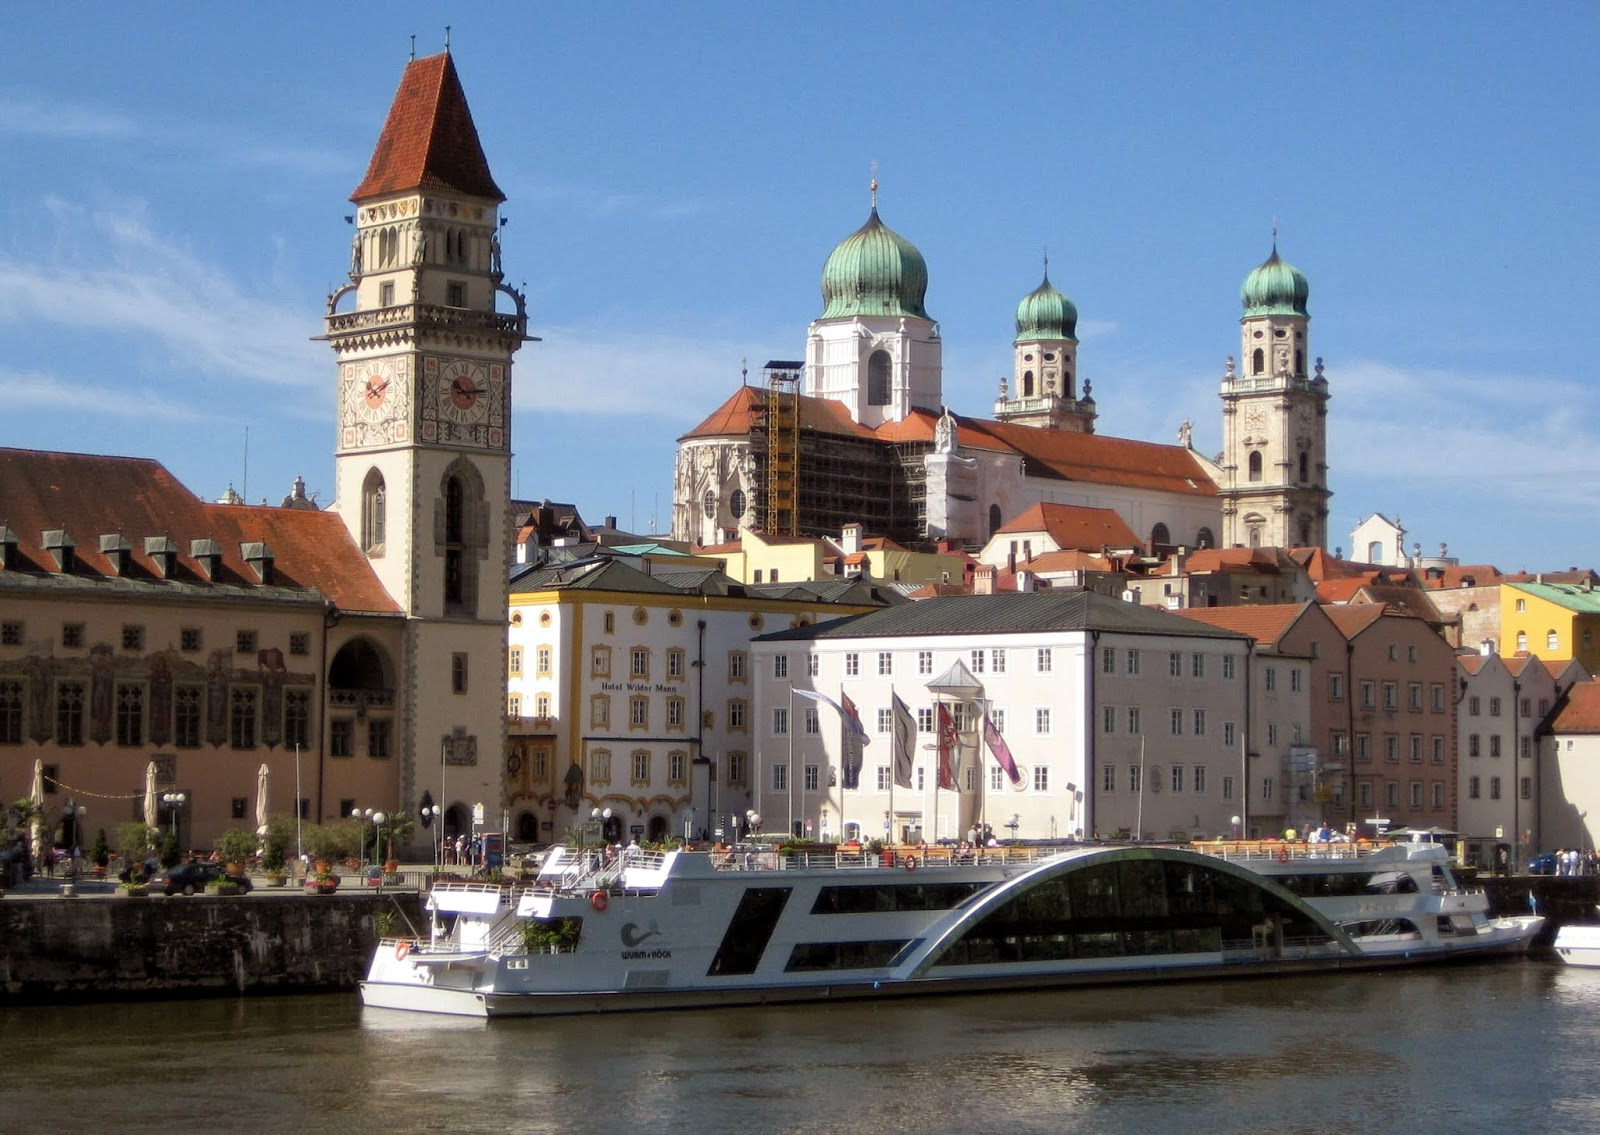 Welcome to Passau, Germany—our first stop on our Viking River Cruises' 'Danube Waltz' from Germany to Hungary. Photo: WikiMedia.org.